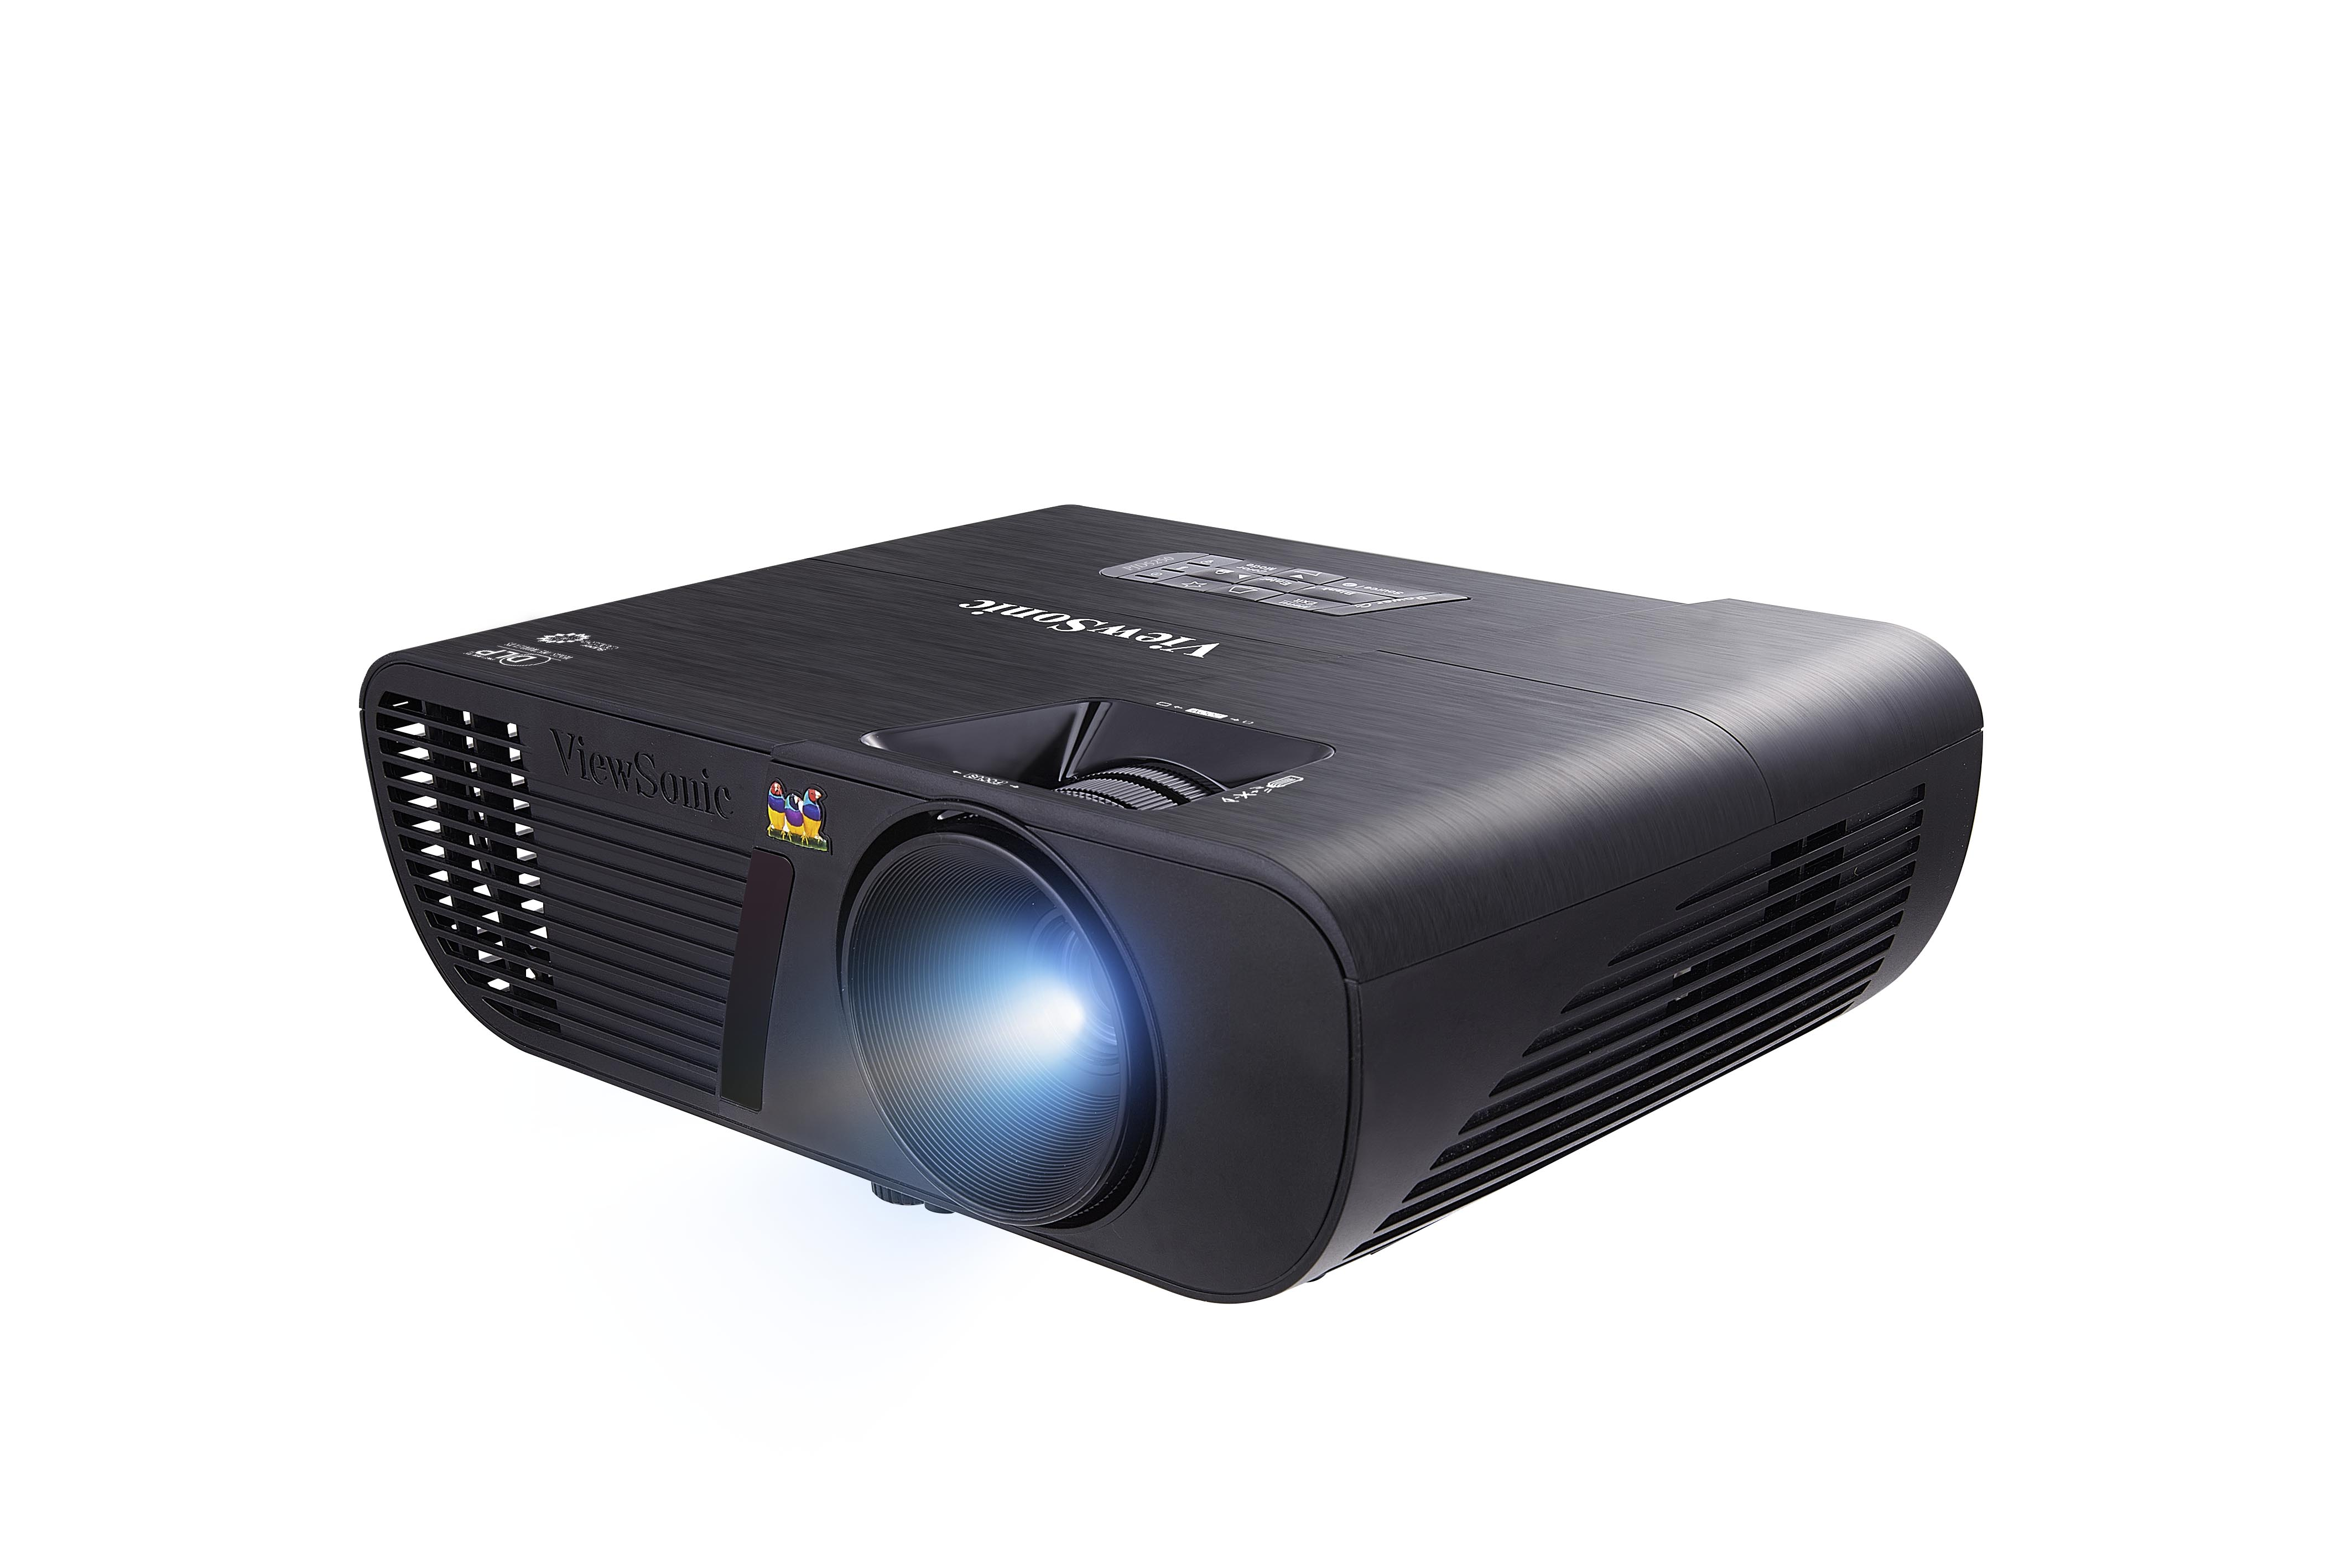 Videoprojector Viewsonic PJD7827HDL